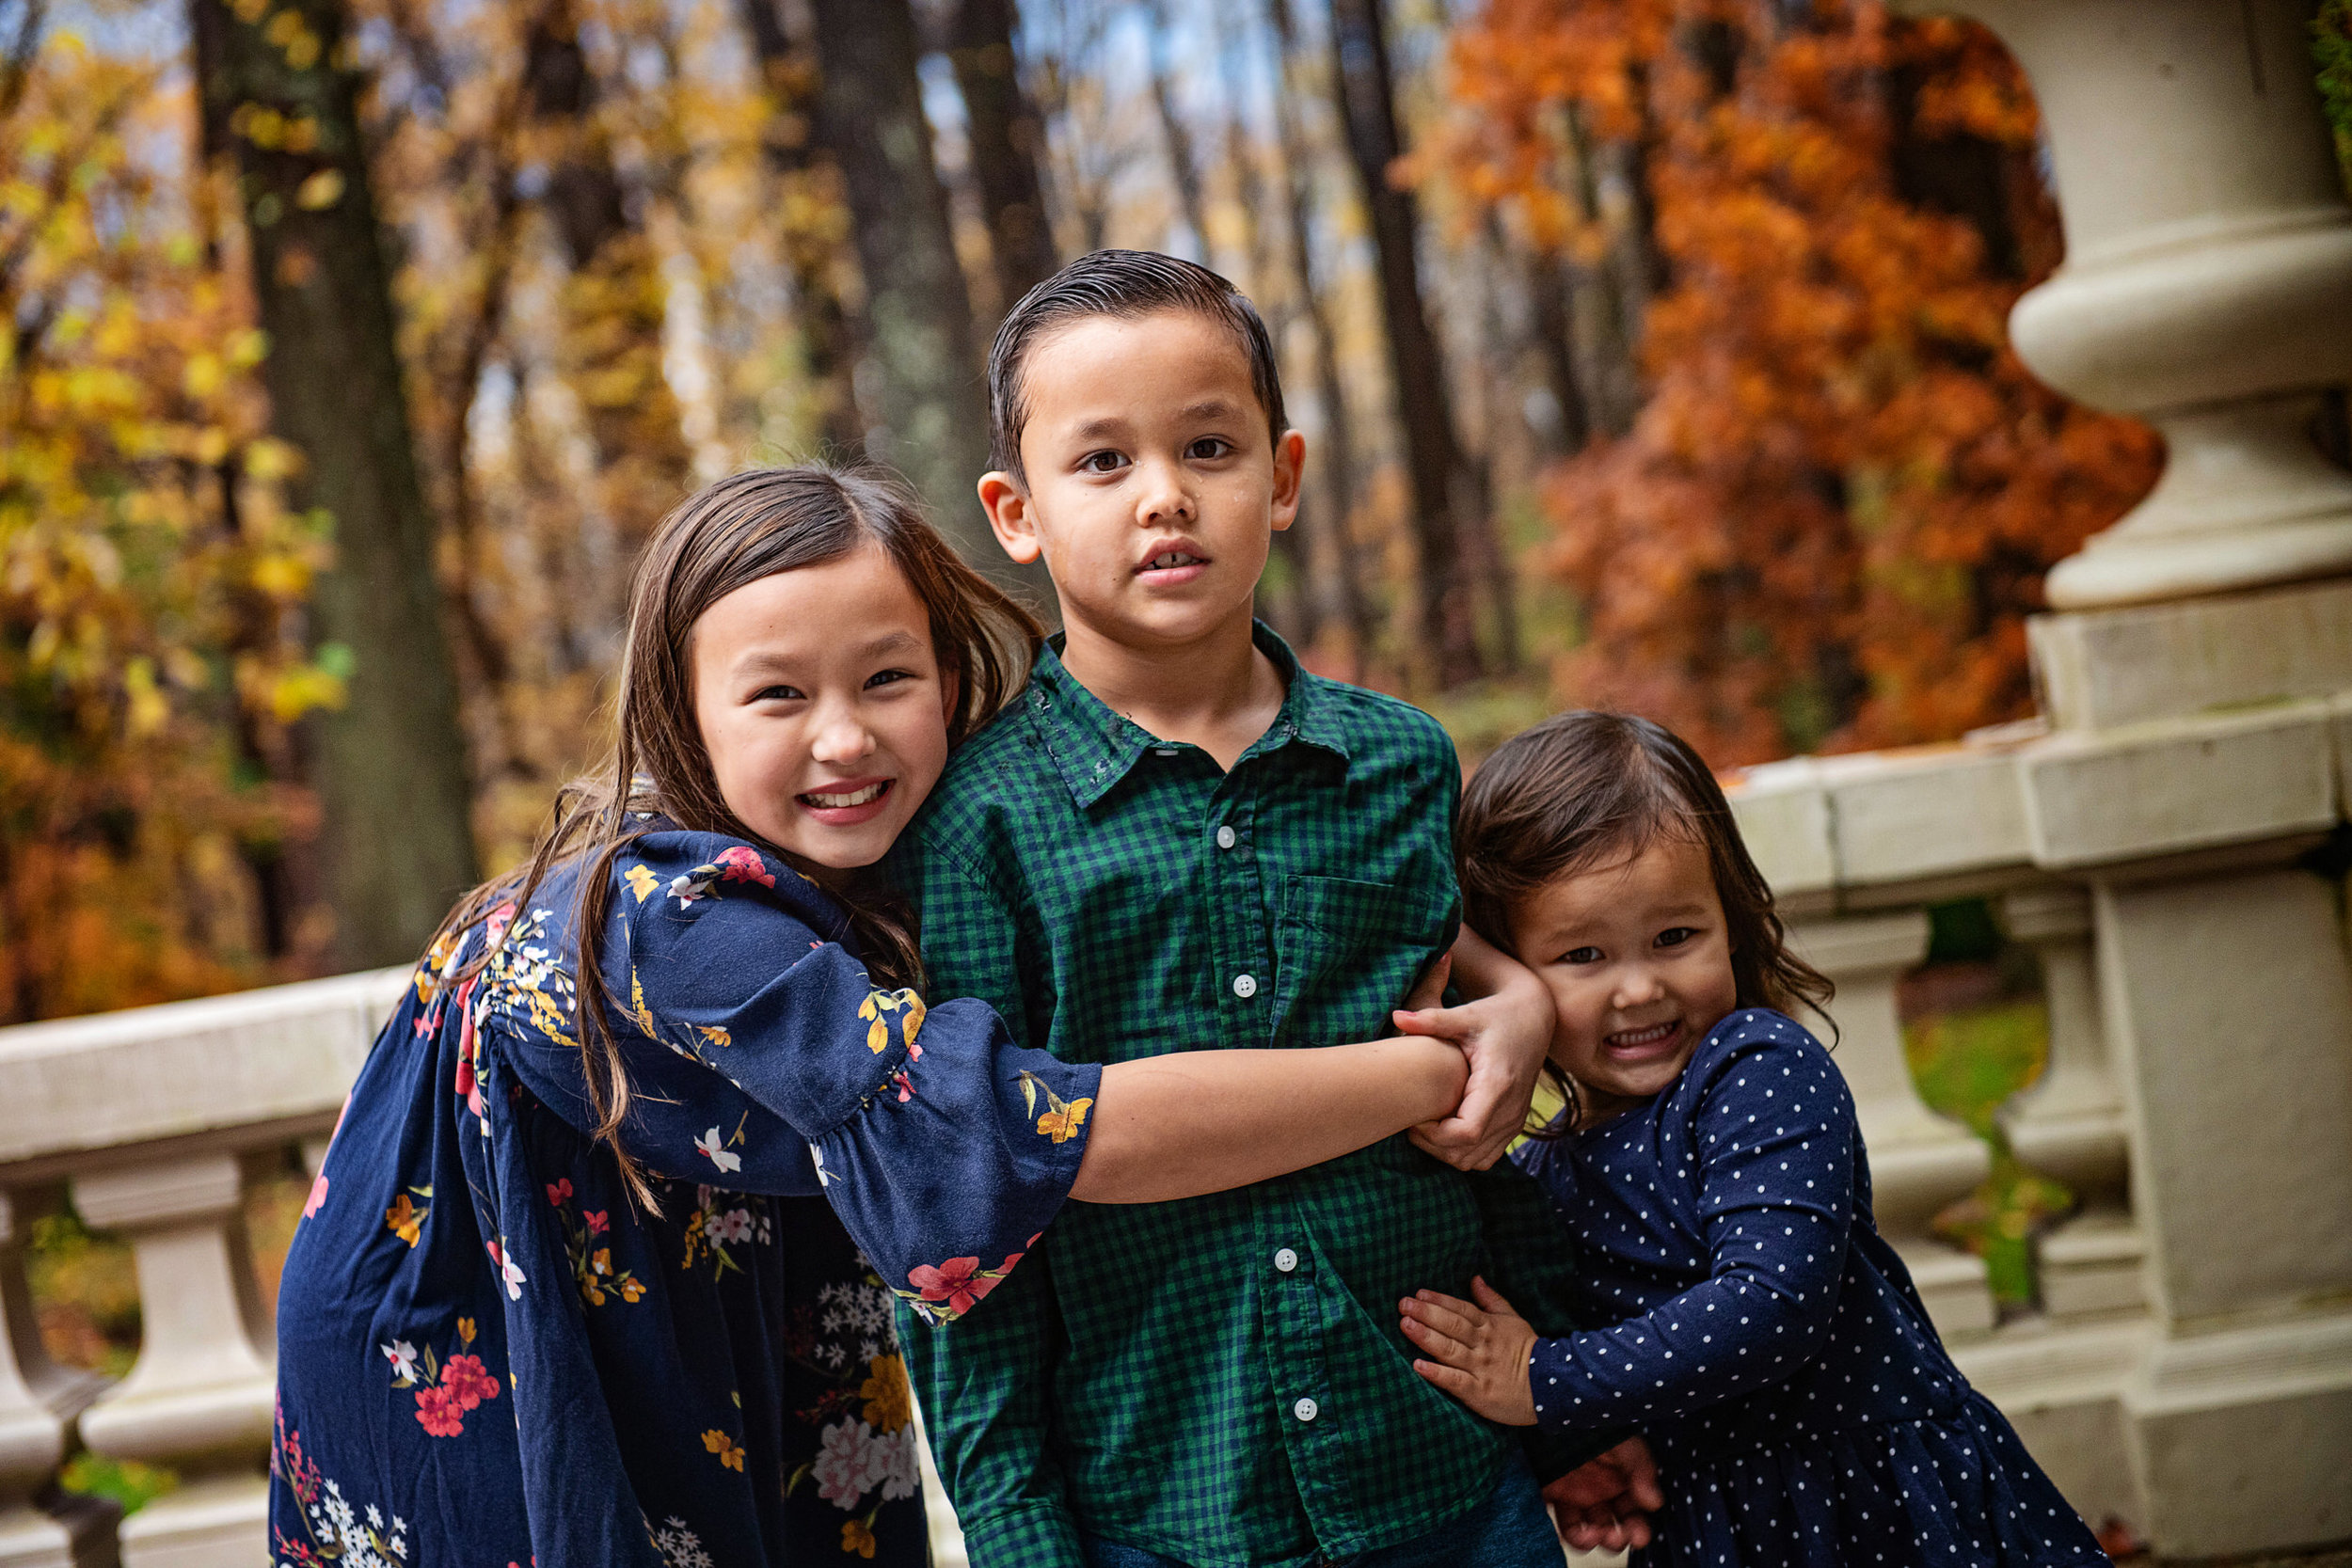 MarylandFamilyPhotography-LienFamily2018-53.jpg